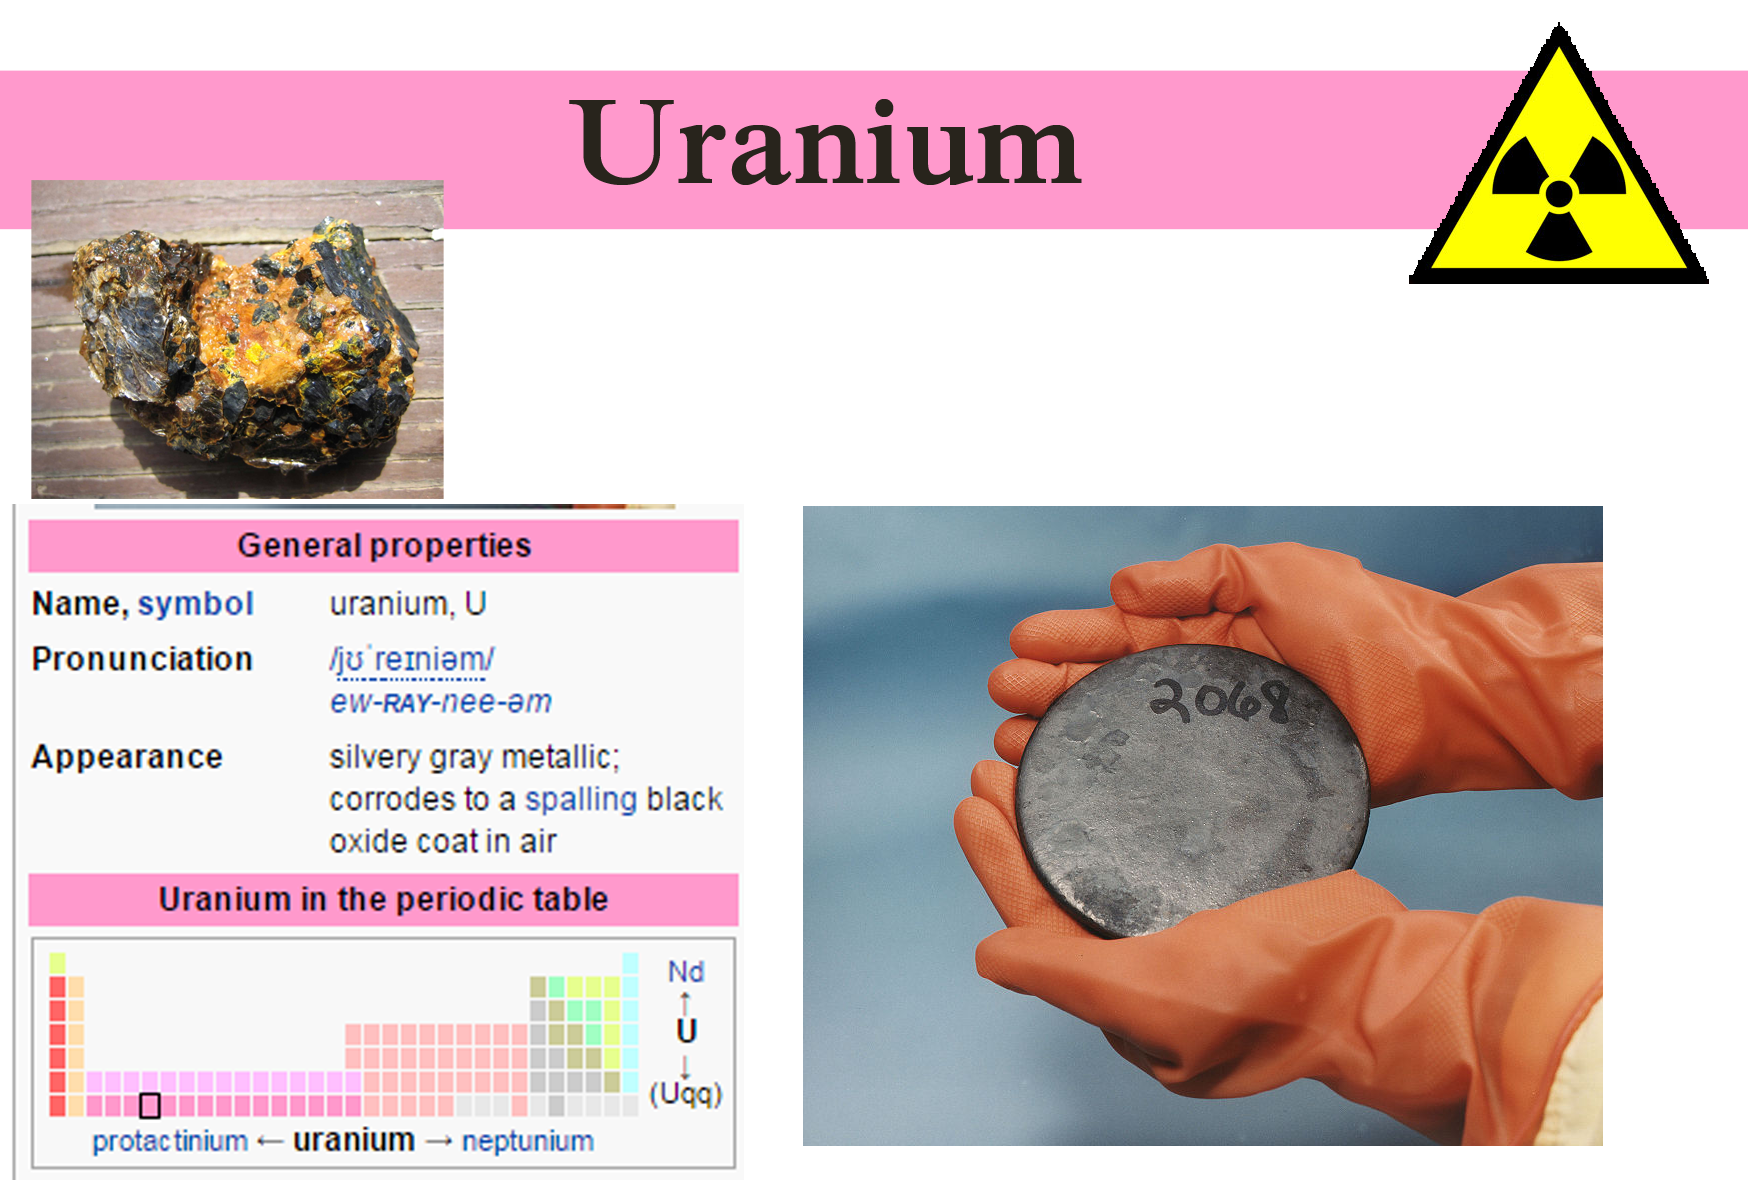 Uranium galnet wiki fandom powered by wikia uranium is a chemical element with symbol u and atomic number 92 it is a silvery white metal in the actinide series of the periodic table a uranium atom gamestrikefo Image collections